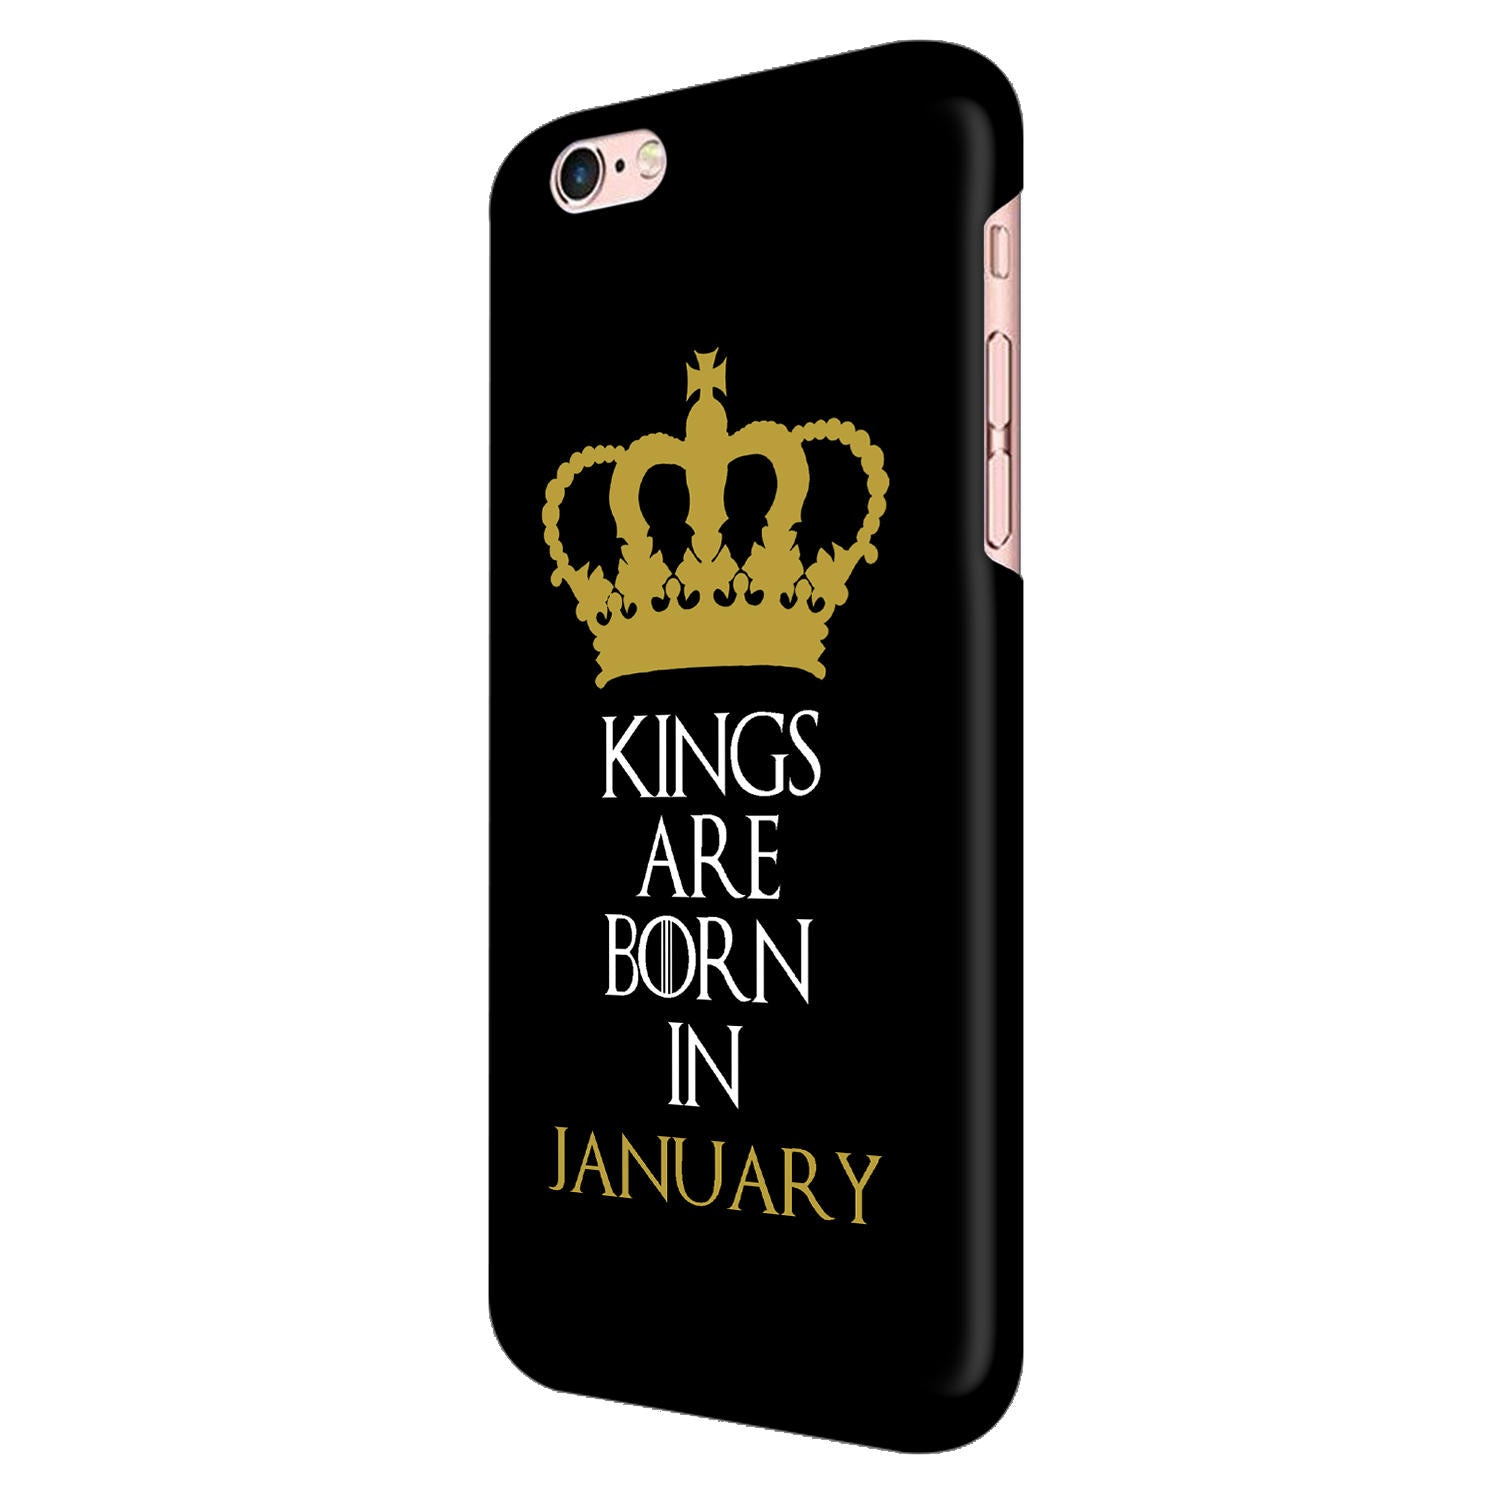 Kings January iPhone 6 Mobile Cover Case - MADANYU